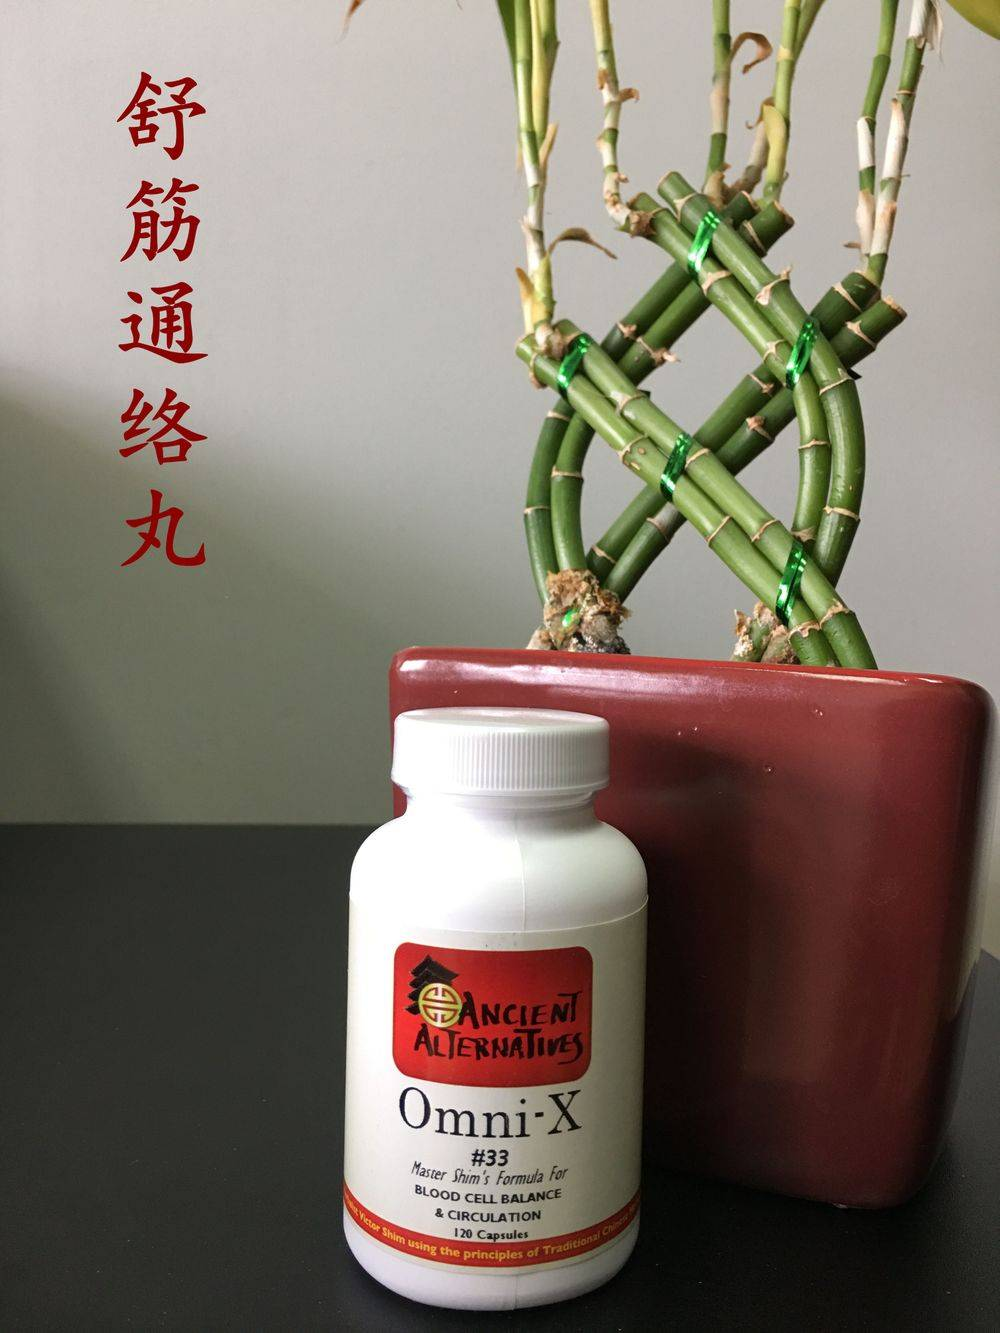 Improve circulation, treat muscle spasms, eliminate mucus and blood clots, treat gout, shrink tumors and treat leukemia. (120 capsules)